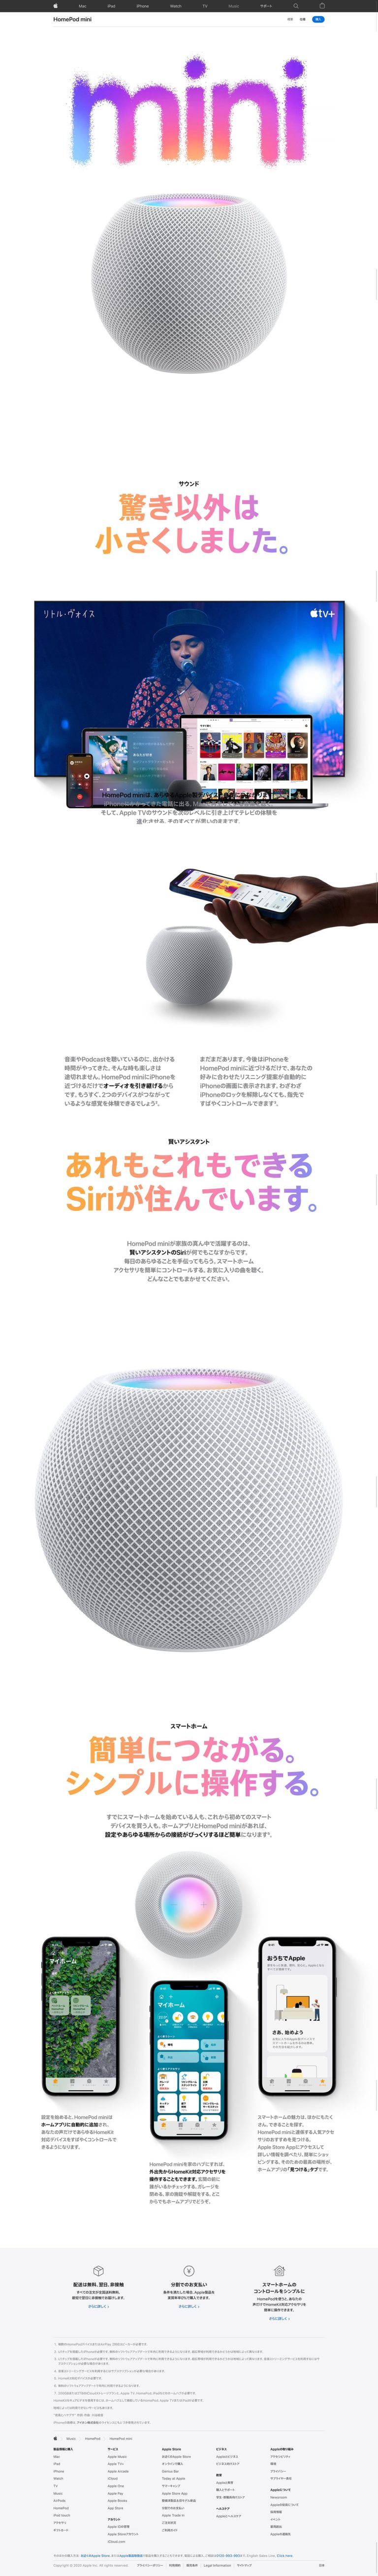 HomePod mini - Apple